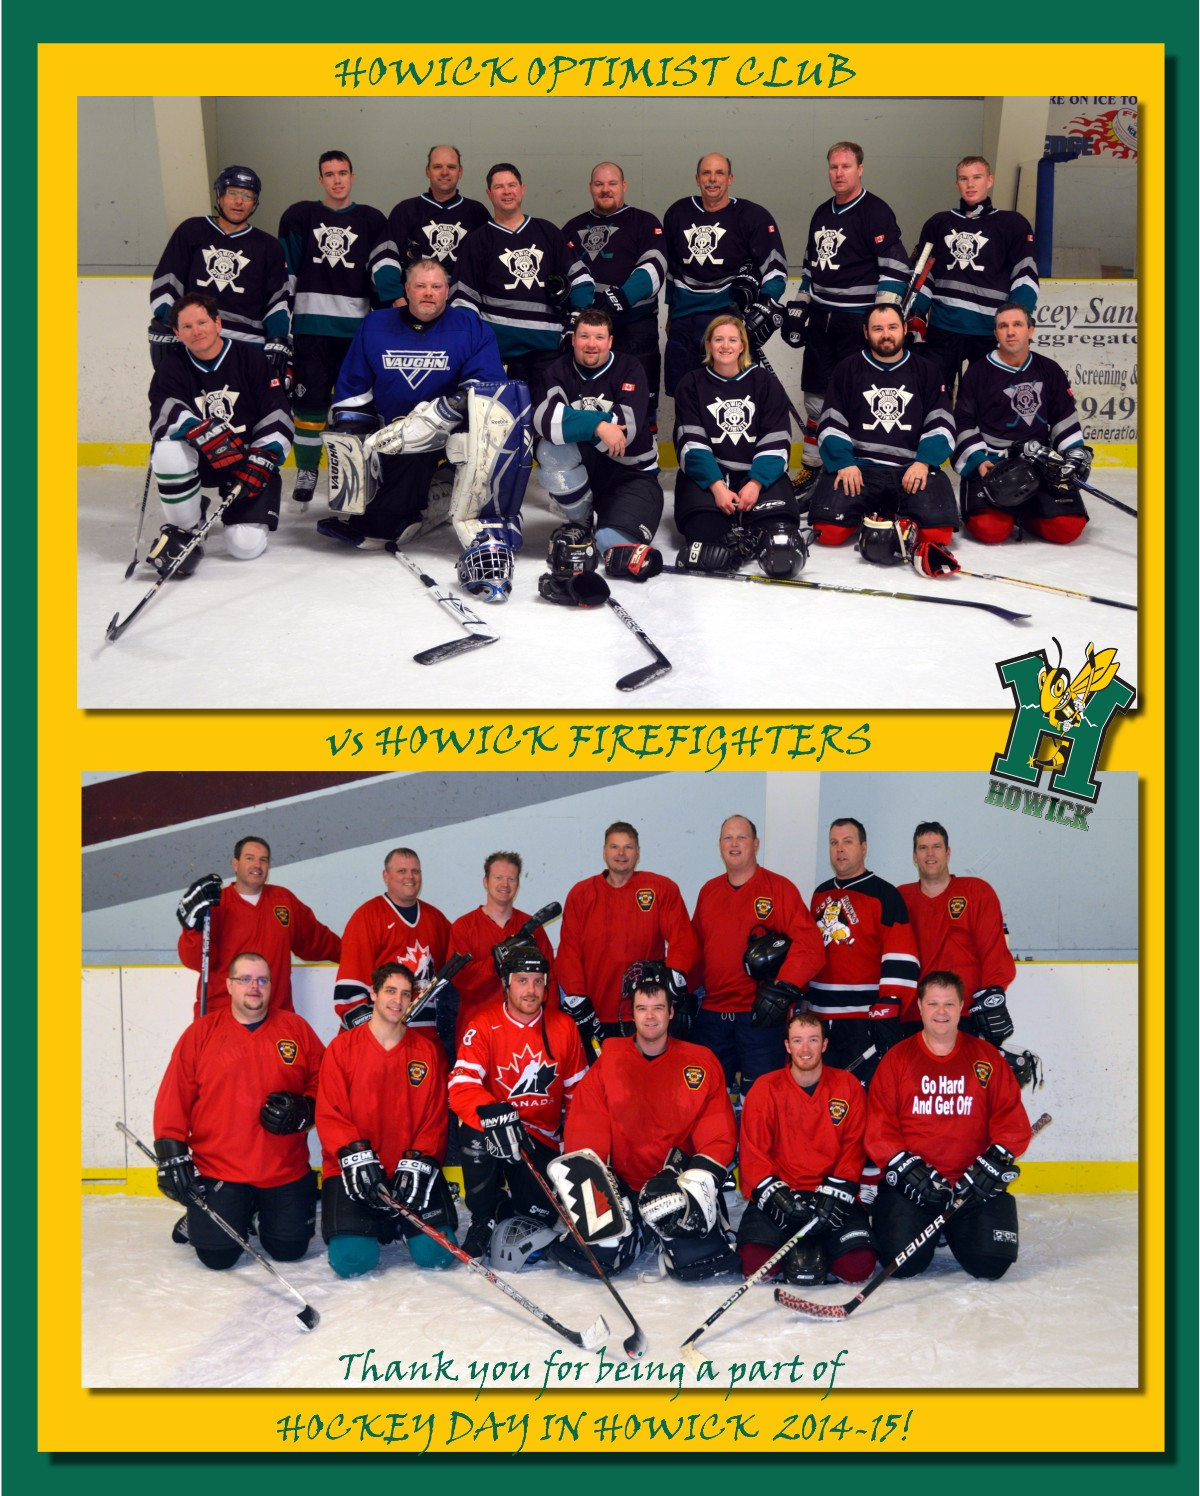 Hockey_Day_in_Howick_collage.JPG